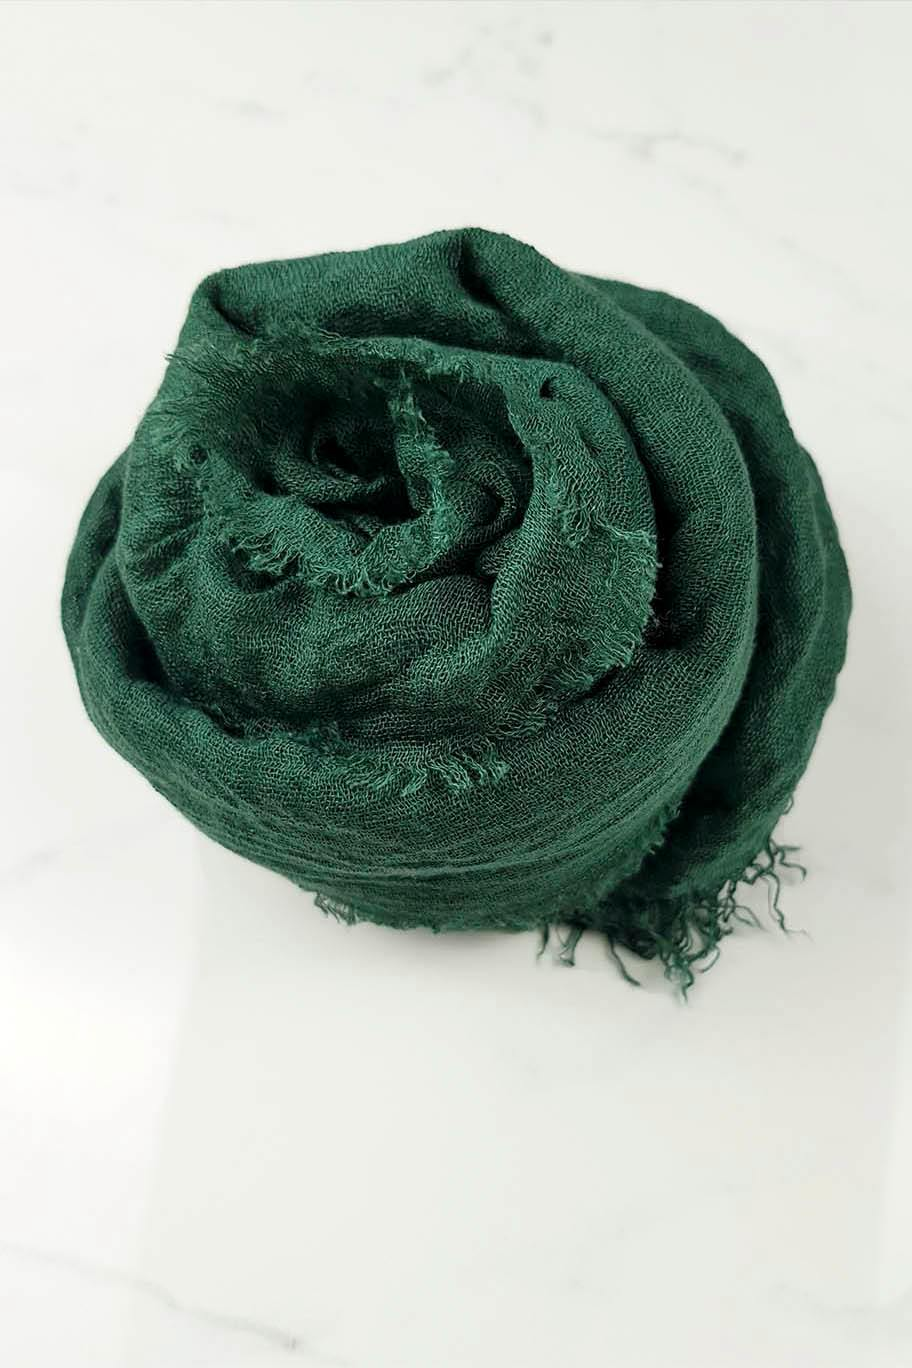 Bottle Green Crinkle Cotton - Crinkle Cotton Hijabs - The Modest Look